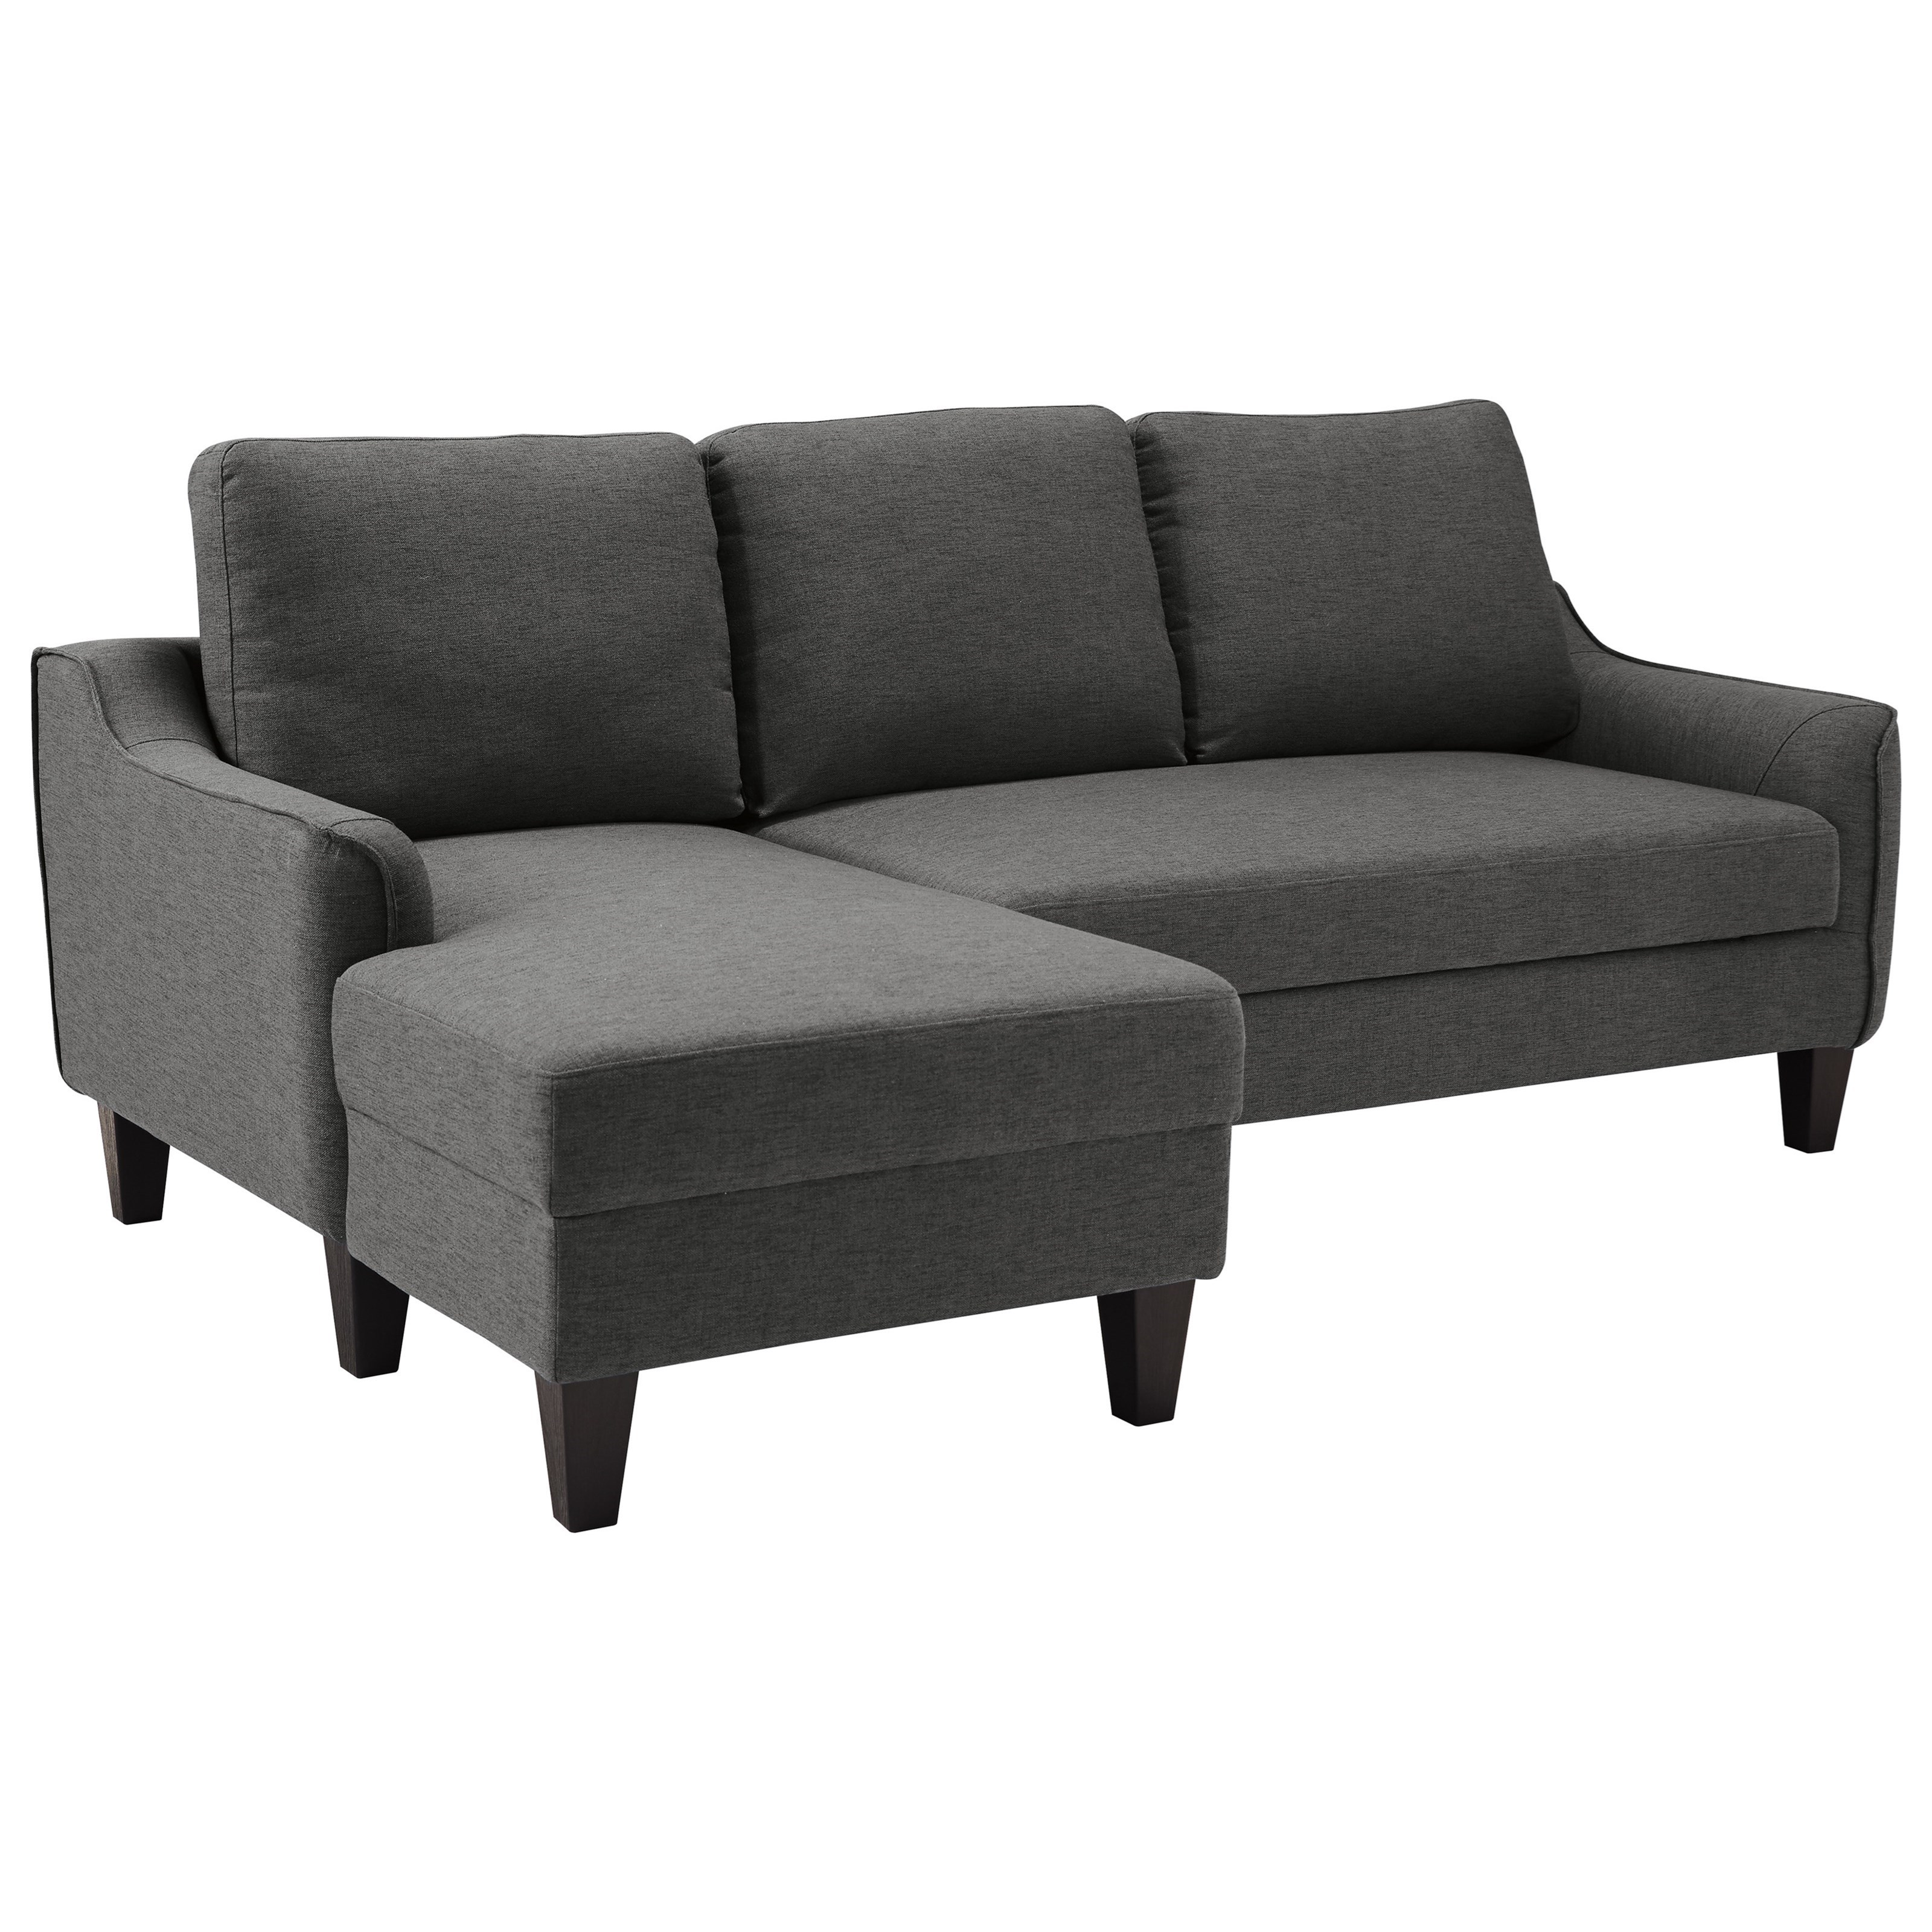 Queen Sectional Sleeper Sofa Signature Design By Ashley Jarreau Queen Sofa Sleeper With